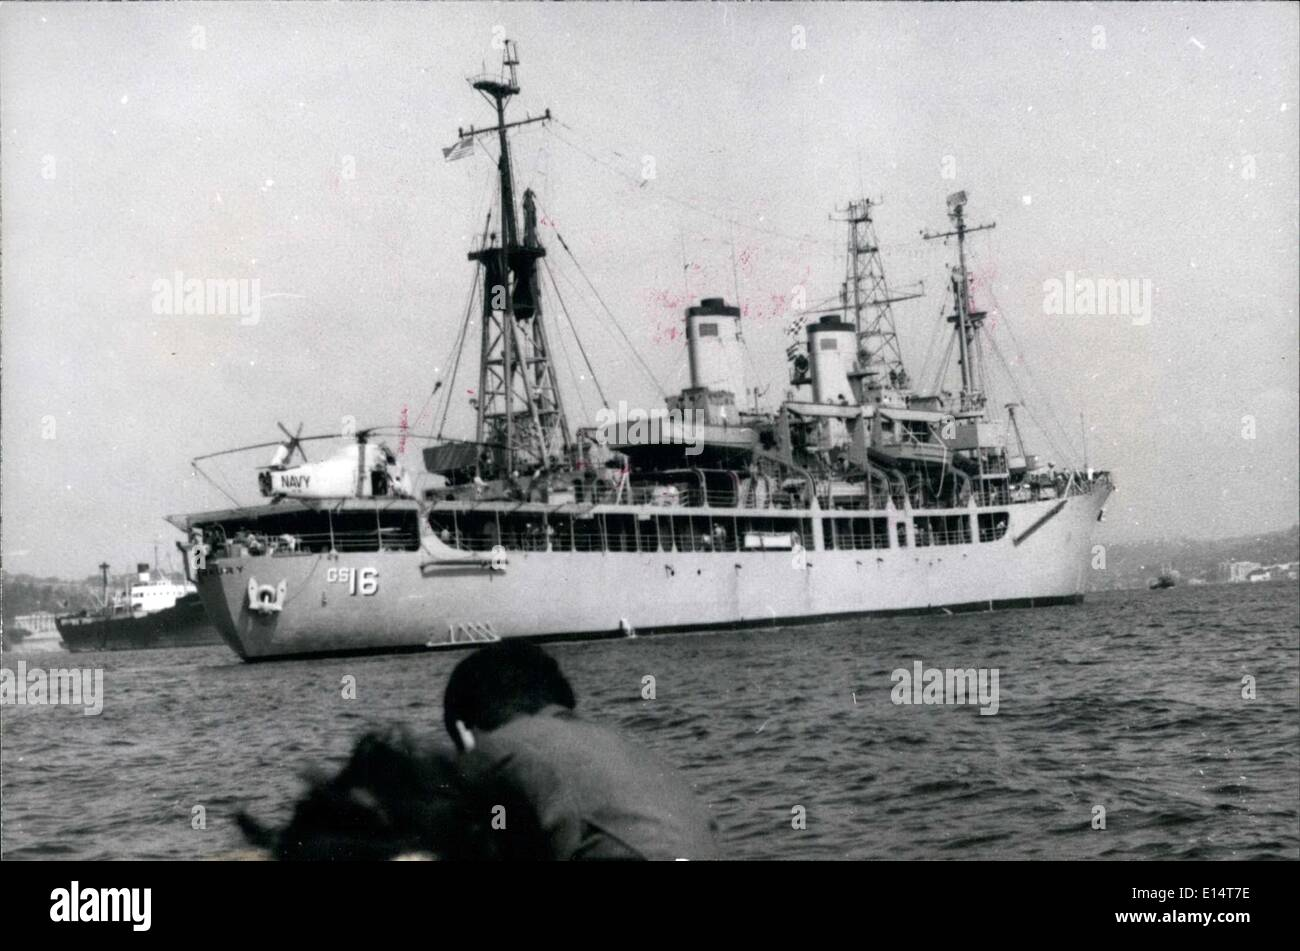 Apr. 18, 2012 - The first American Navy ship ''Maury'' which sail to the black sea after the world war two since Potsdam Conference. It is the guest of the Turkish Navy and it will be making some hydrographic reseches in the Black Sea. When the ship make it application in the Black Sea an Officier of the Turkish Navy will be in the ship for guid. - Stock Image